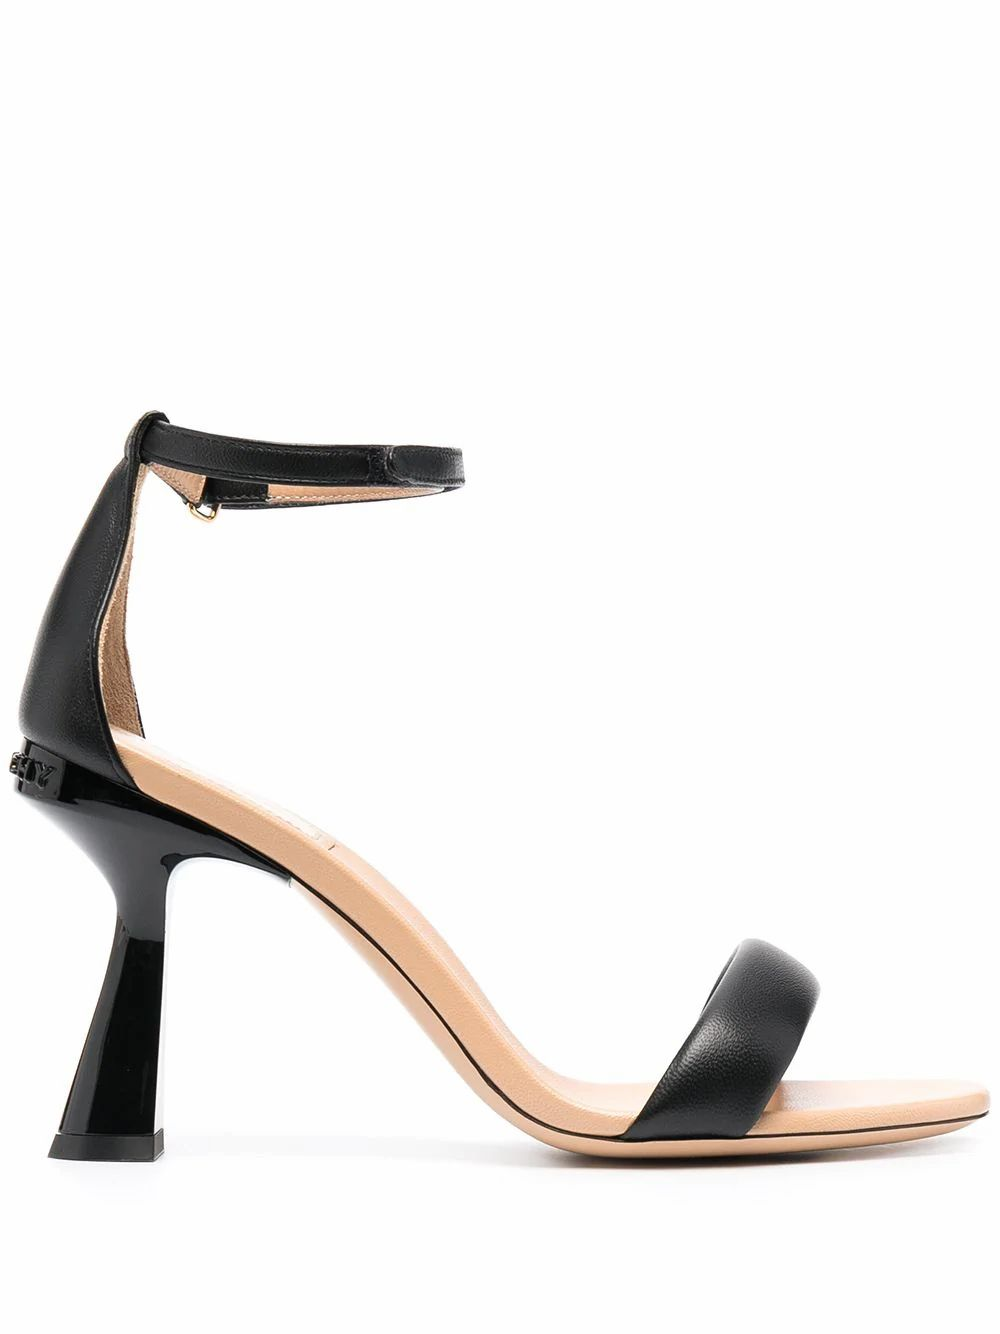 Givenchy Shoes GIVENCHY WOMEN'S BLACK LEATHER SANDALS